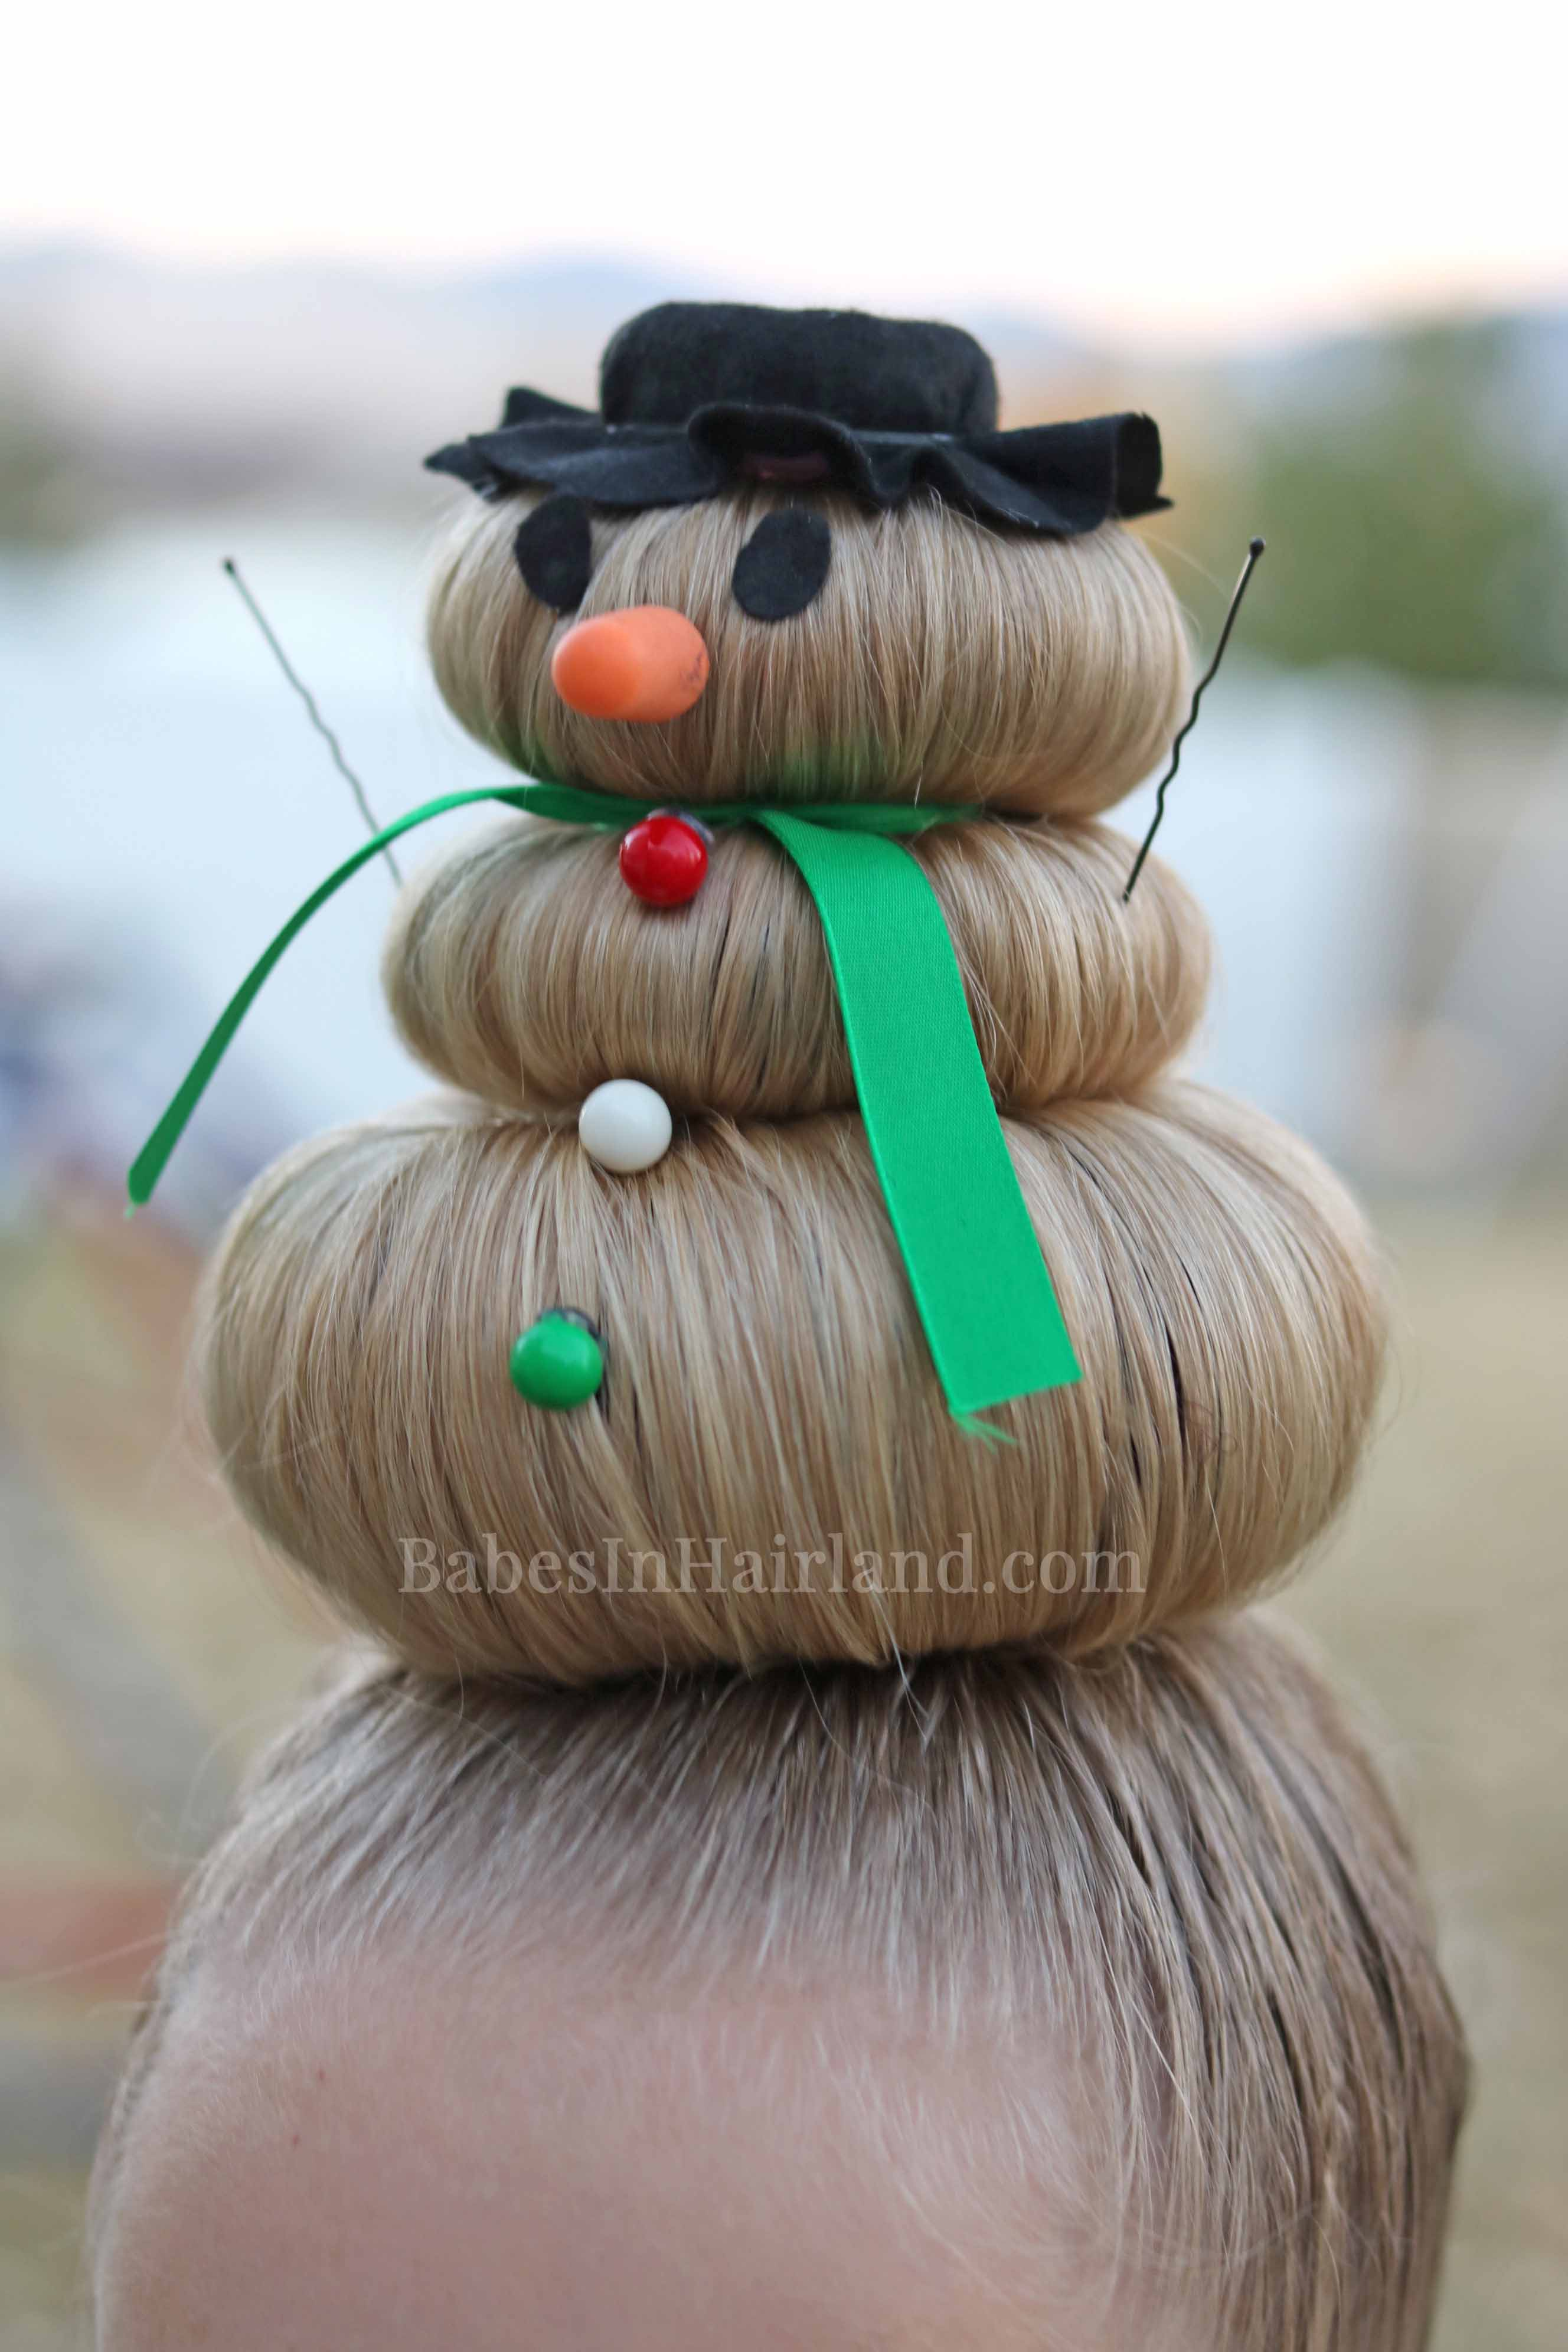 Festive Girls' Christmas Snowman Holiday Hairstyle DIY Tutorials + Video